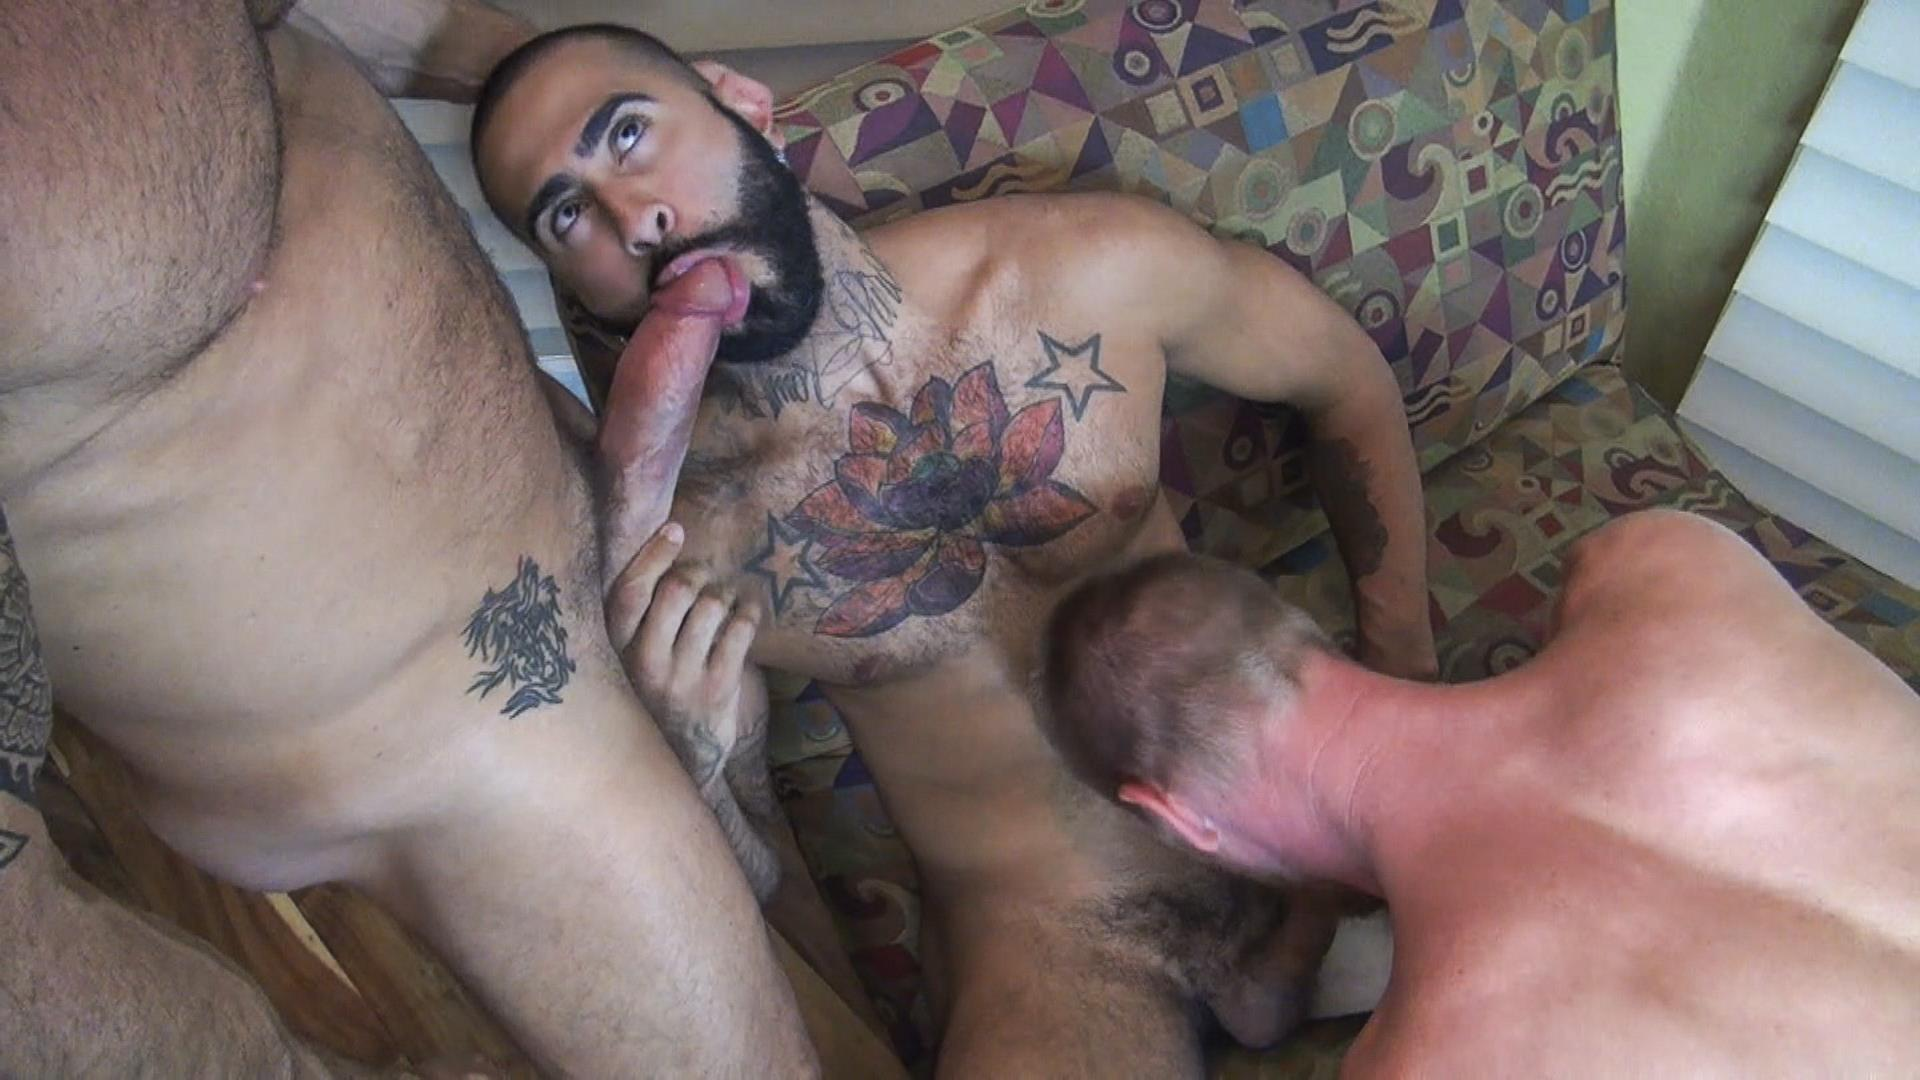 Raw-Fuck-Club-Vic-Rocco-and-Rikk-York-and-Billy-Warren-and-Job-Galt-Bareback-Daddy-Amateur-Gay-Porn-05 Four Hairy Muscle Daddies In A Bareback Fuck Fest Orgy